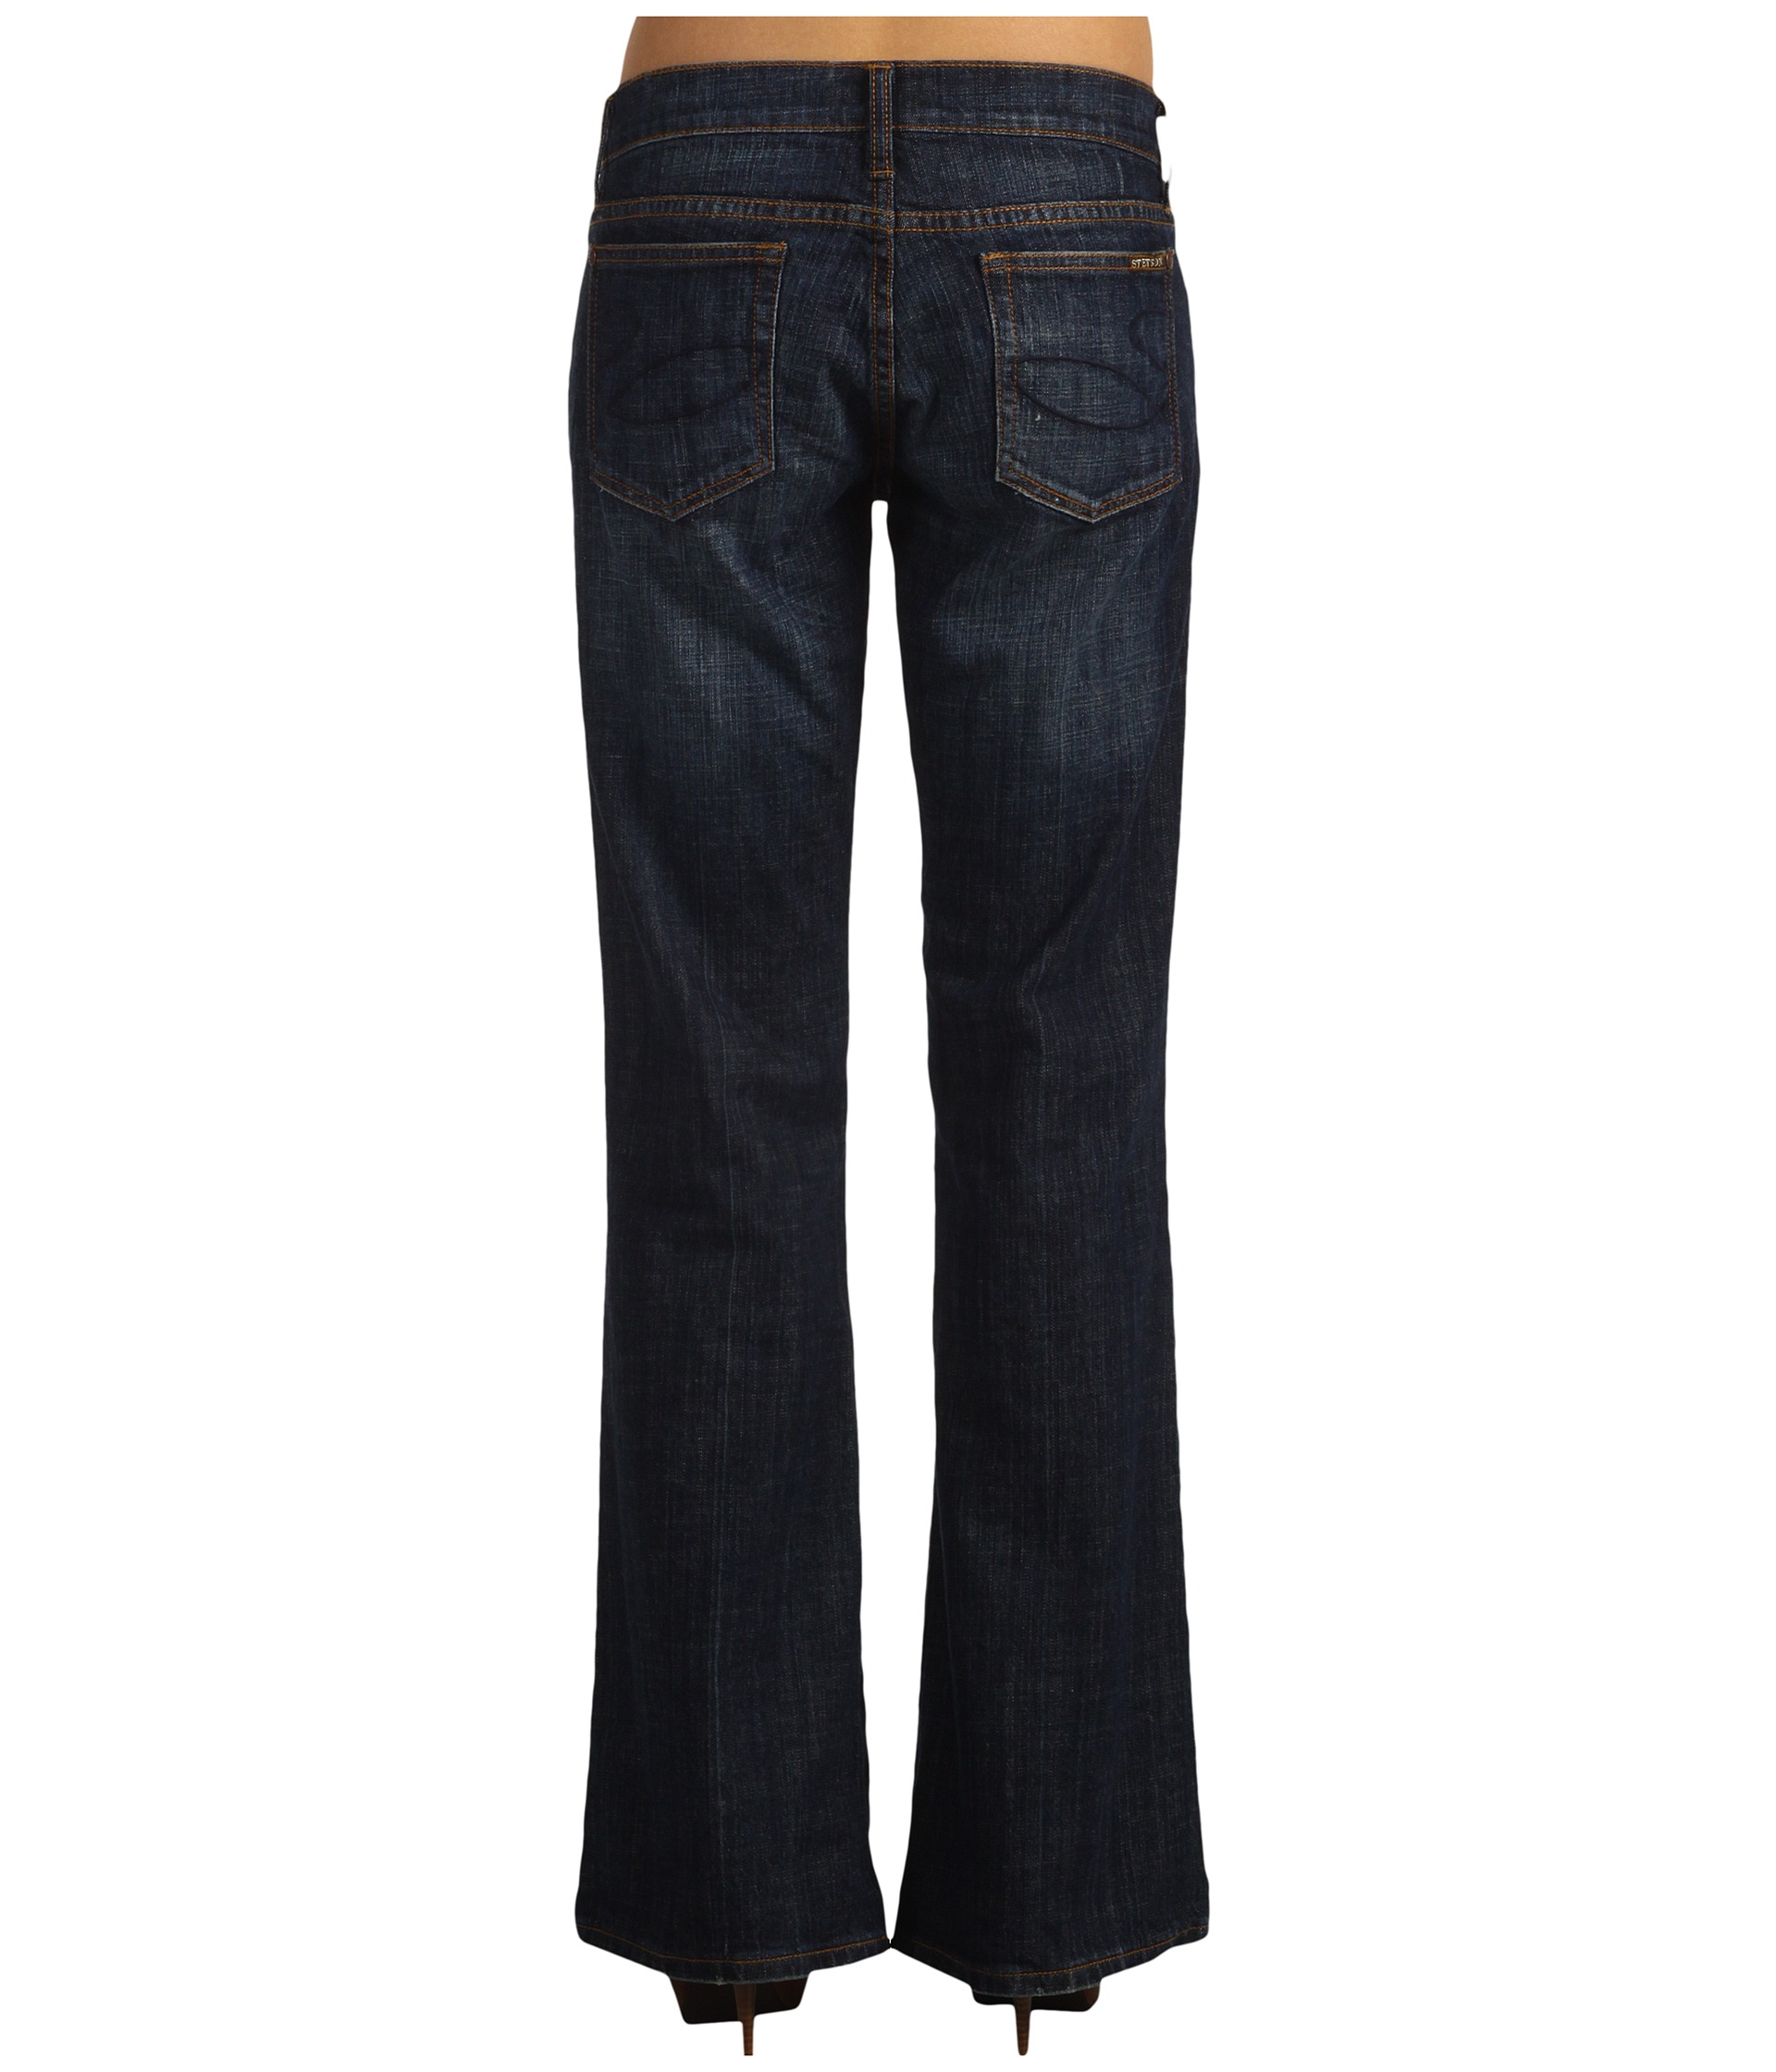 Stetson 816 Classic Boot Cut Jean - Zappos.com Free Shipping BOTH Ways